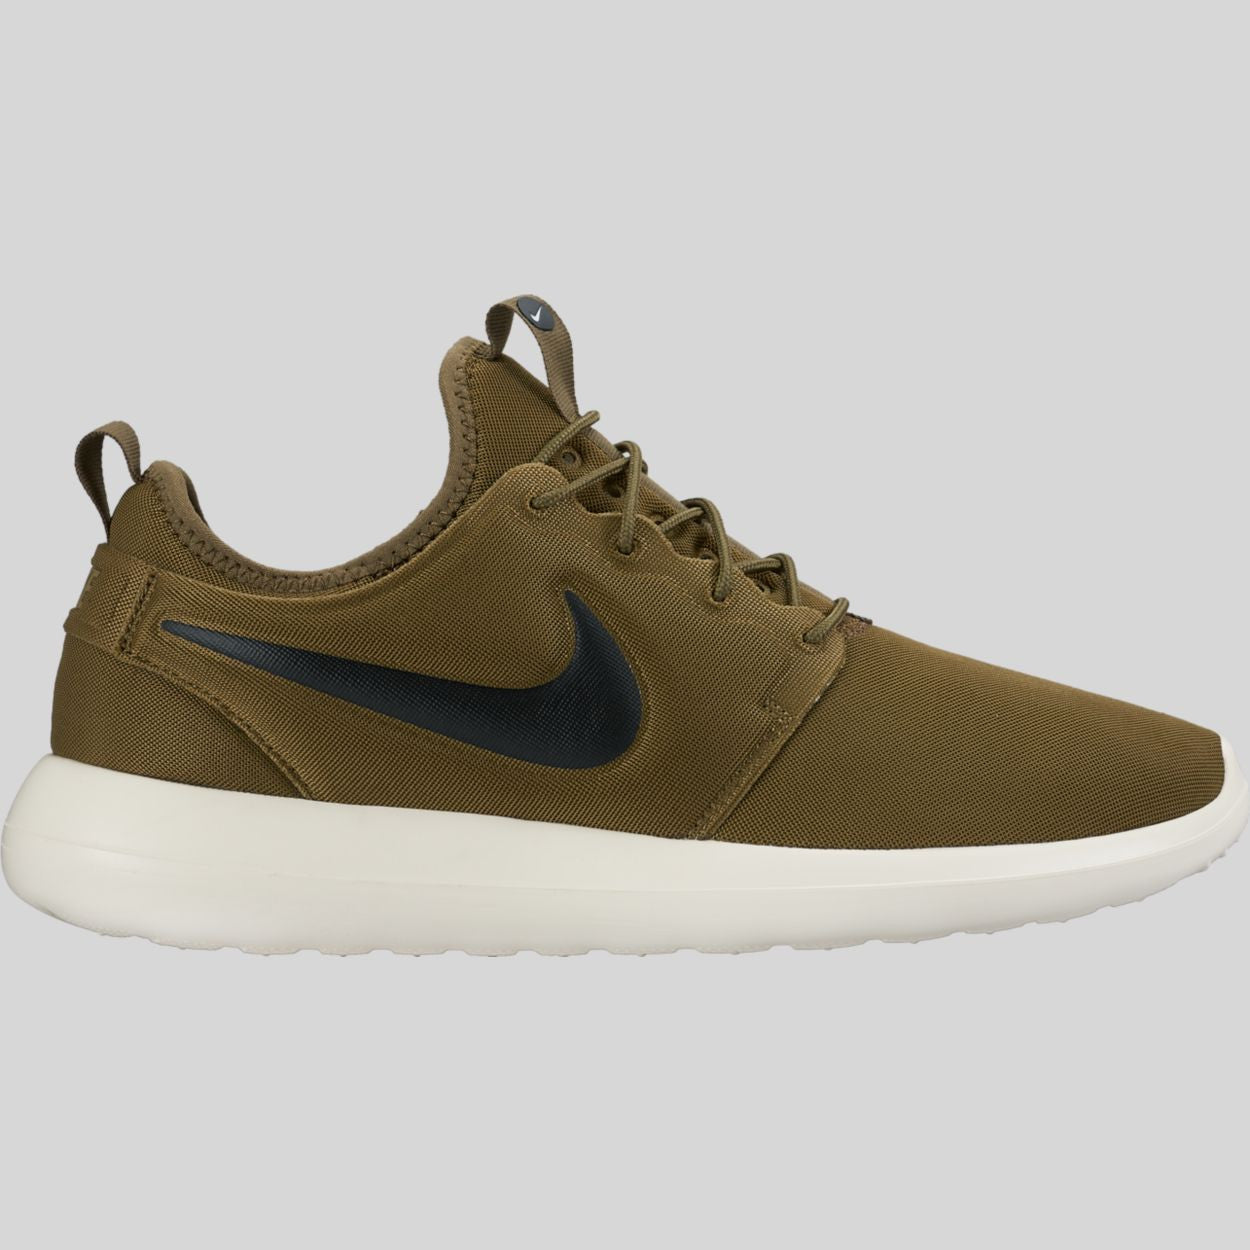 W Cheap Nike ROSHE TWO FLYKNIT 365 (861706 001) SZ: WMNS 7